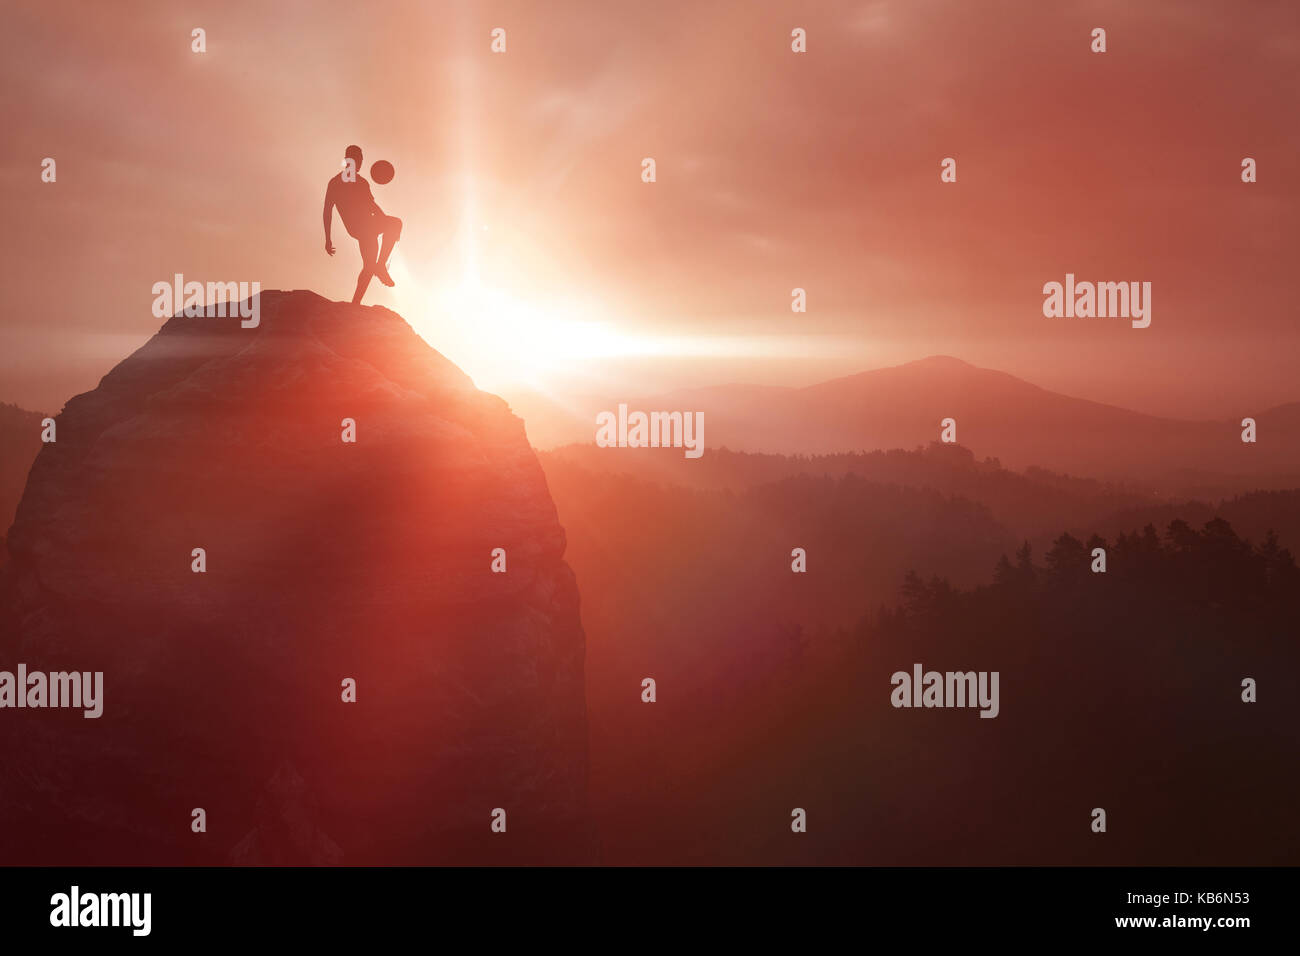 Silhouette of a soccer player  against trees and mountain range against cloudscape - Stock Image